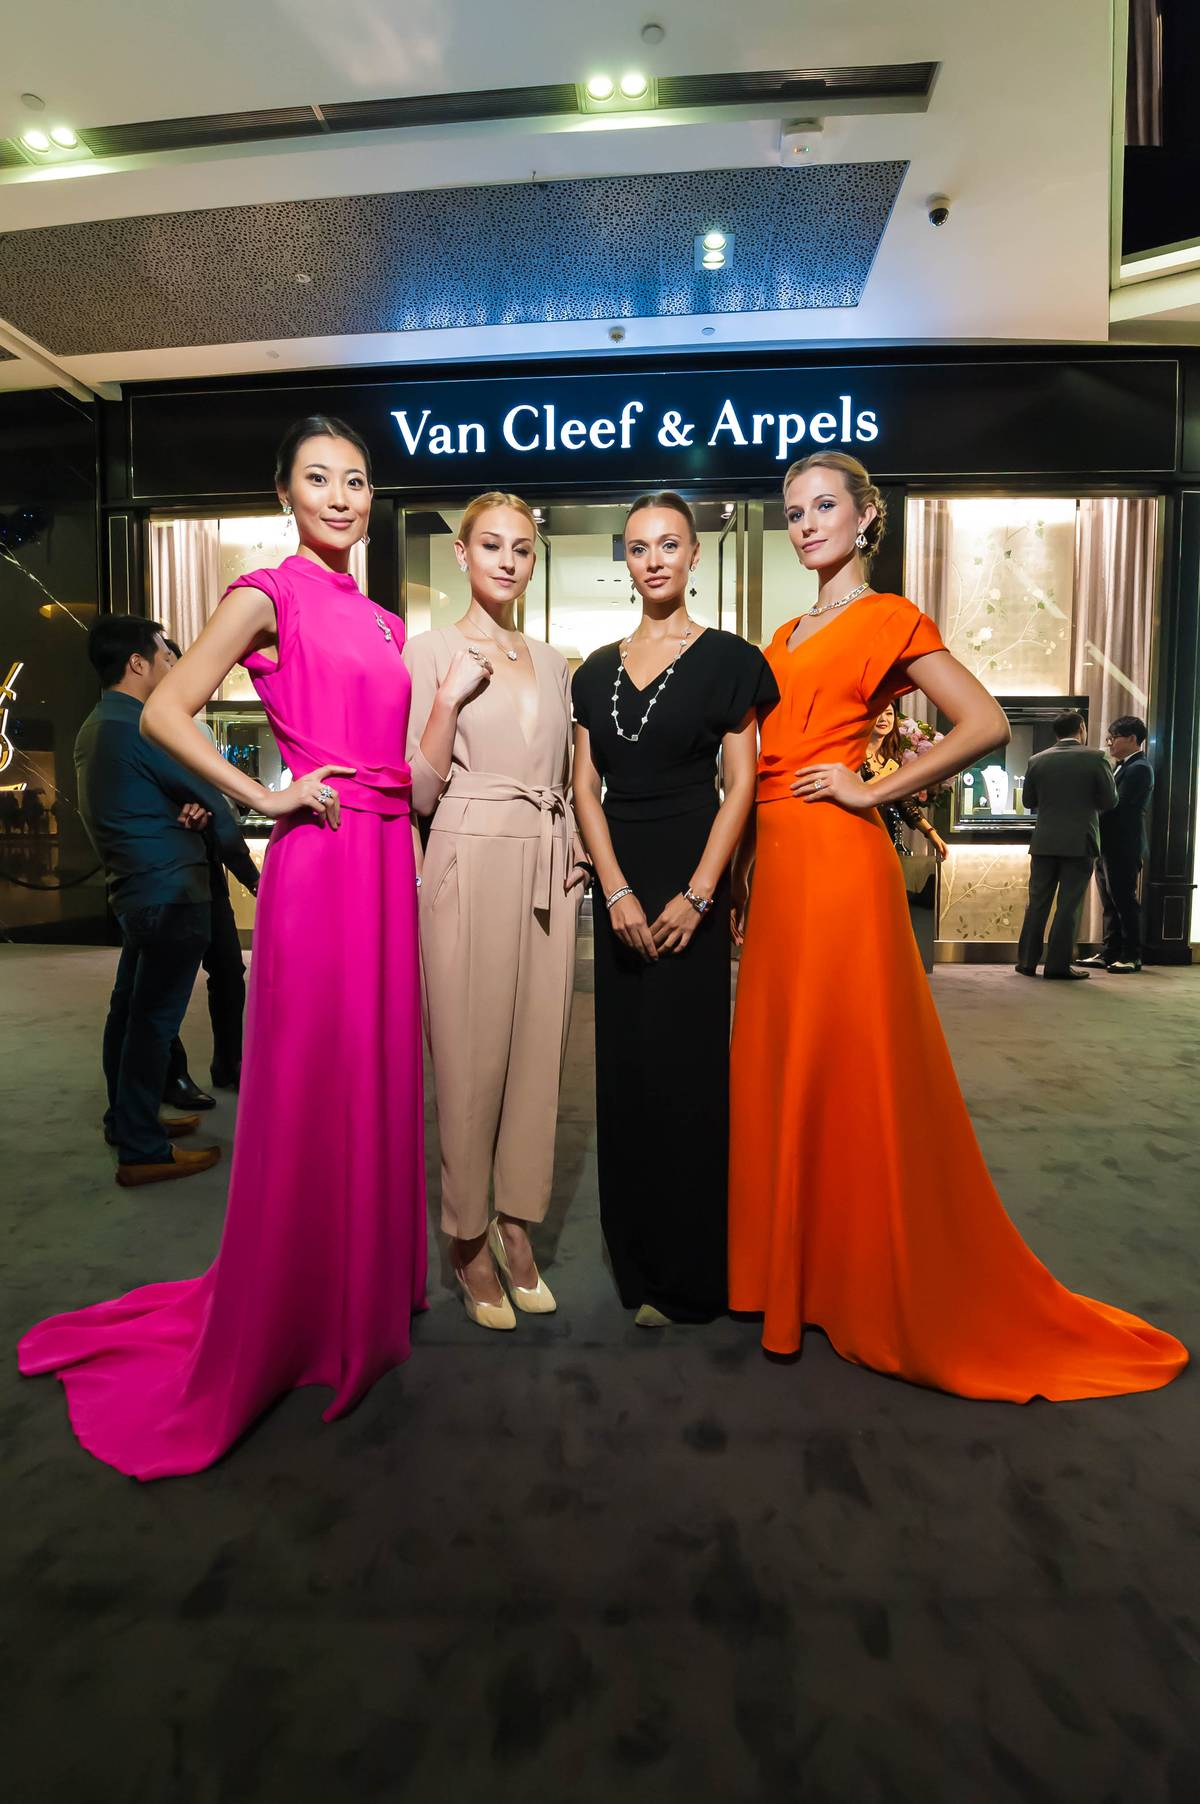 Van Cleef Amp Arpels Opens Boutique At ION Orchard In